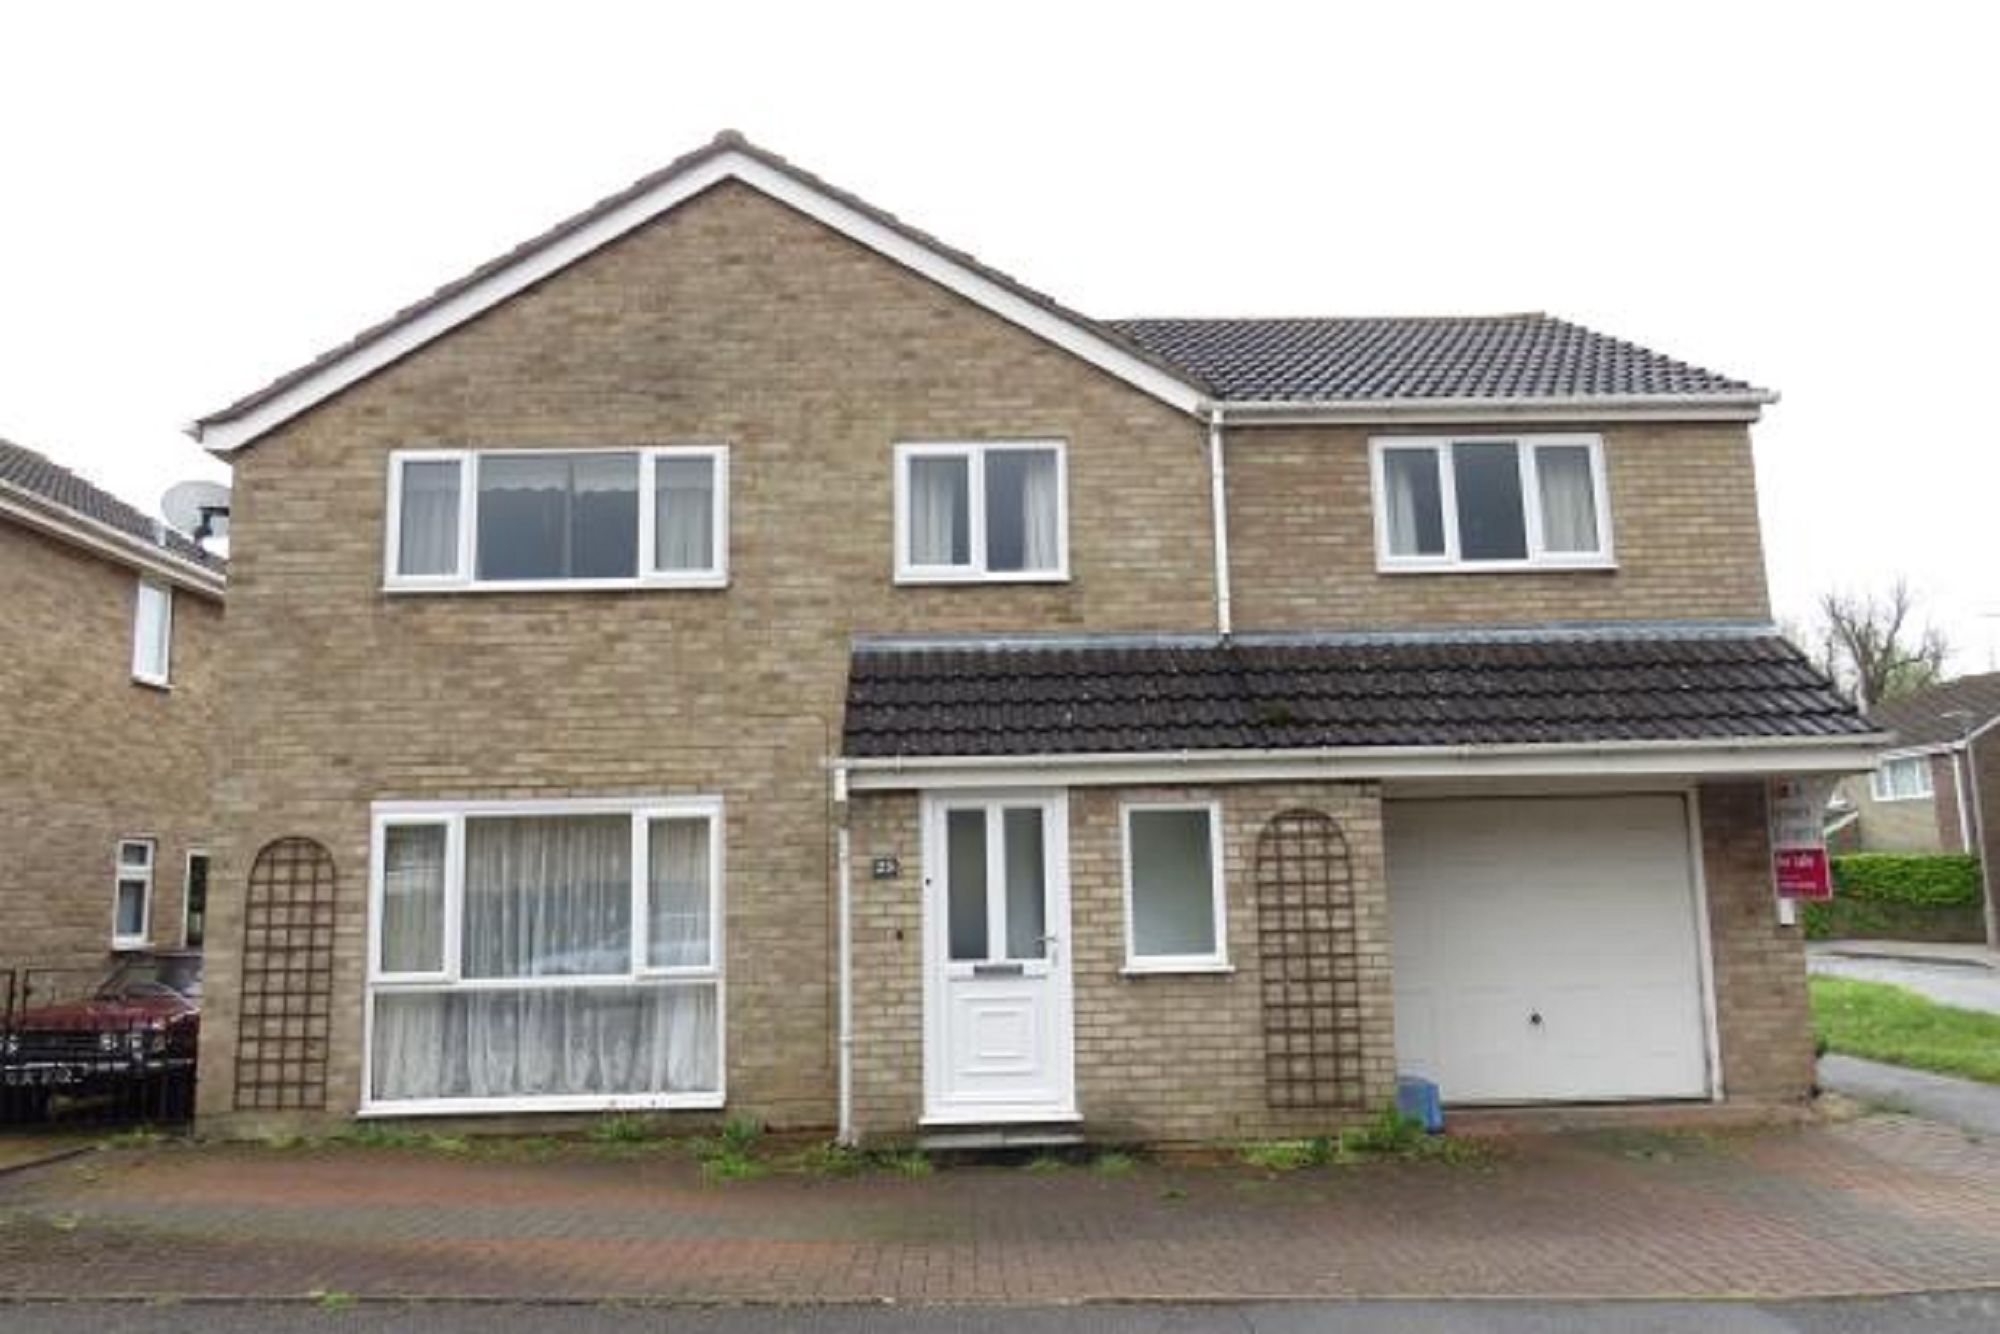 Welland Drive, Newport Pagnell, MK16 9DX